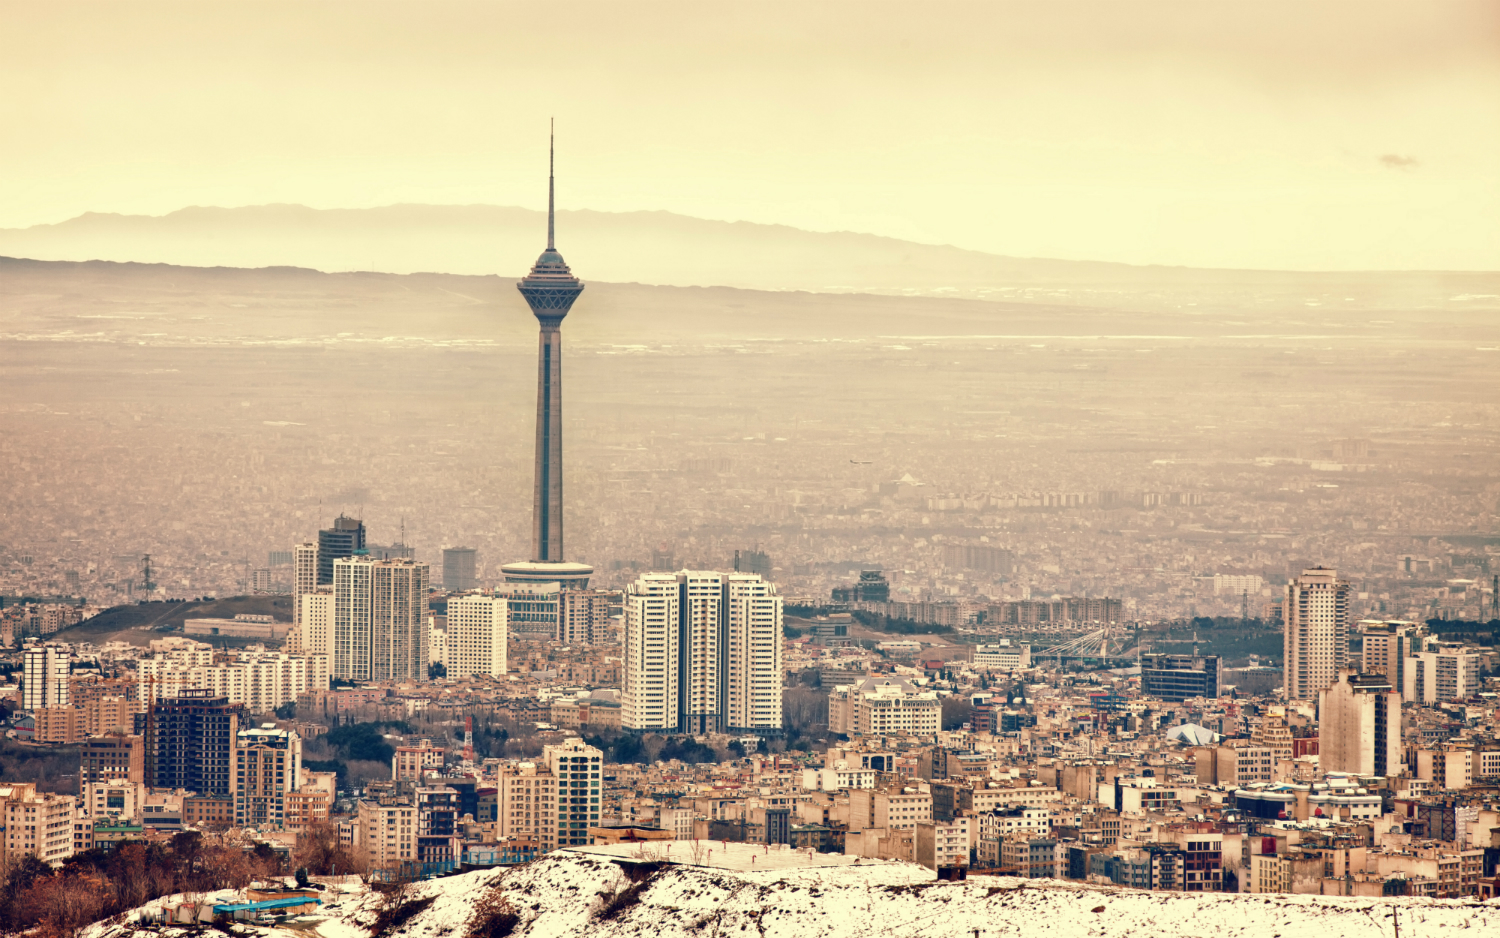 Tehran is sinking dramatically, and it may be too late to recover